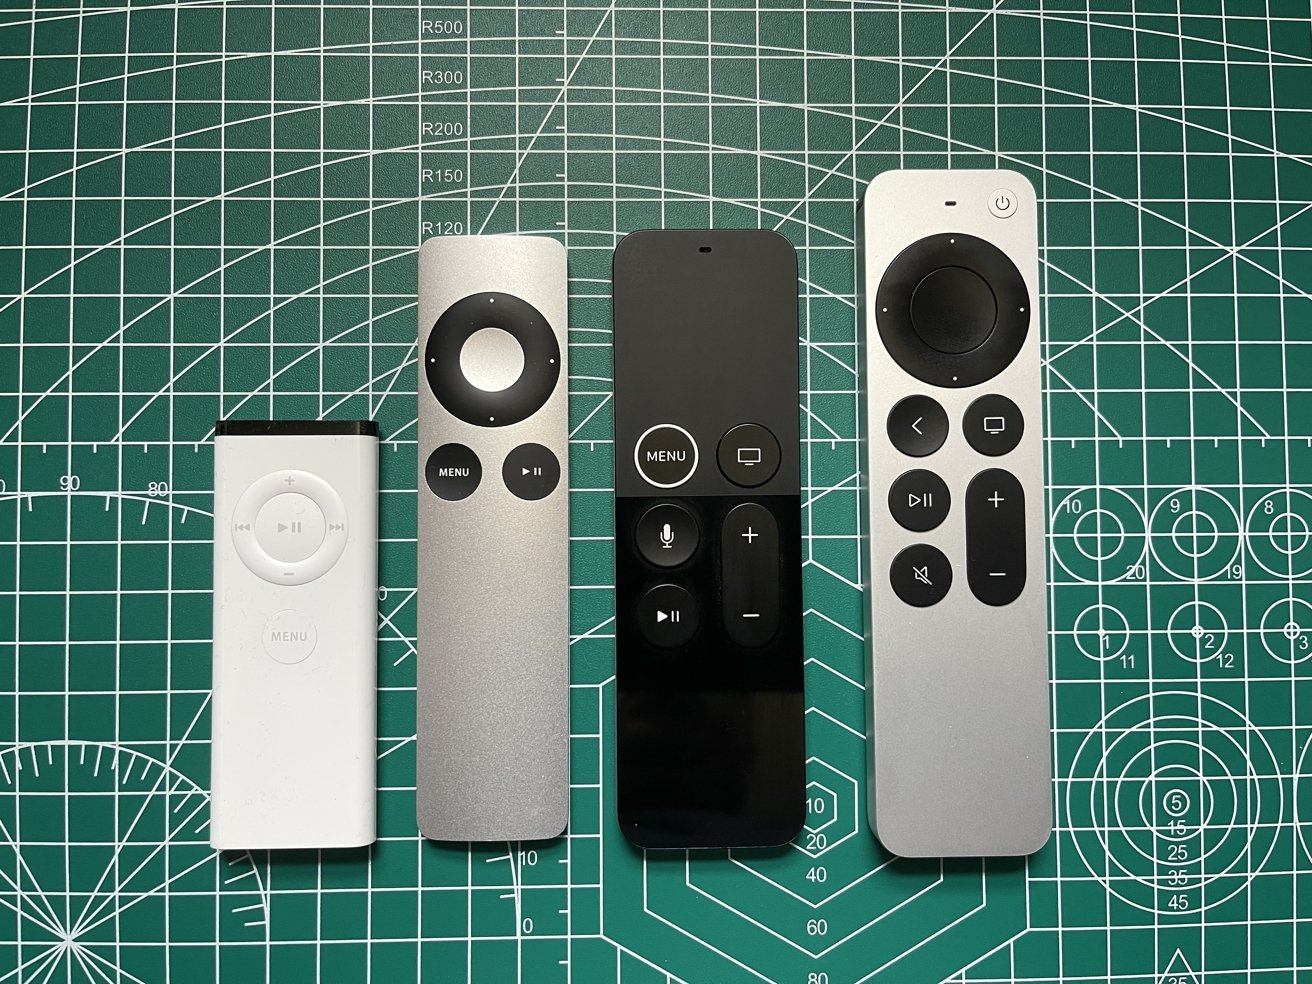 Putting the remotes side-by-side show just how long the newest version is versus its predecessors.